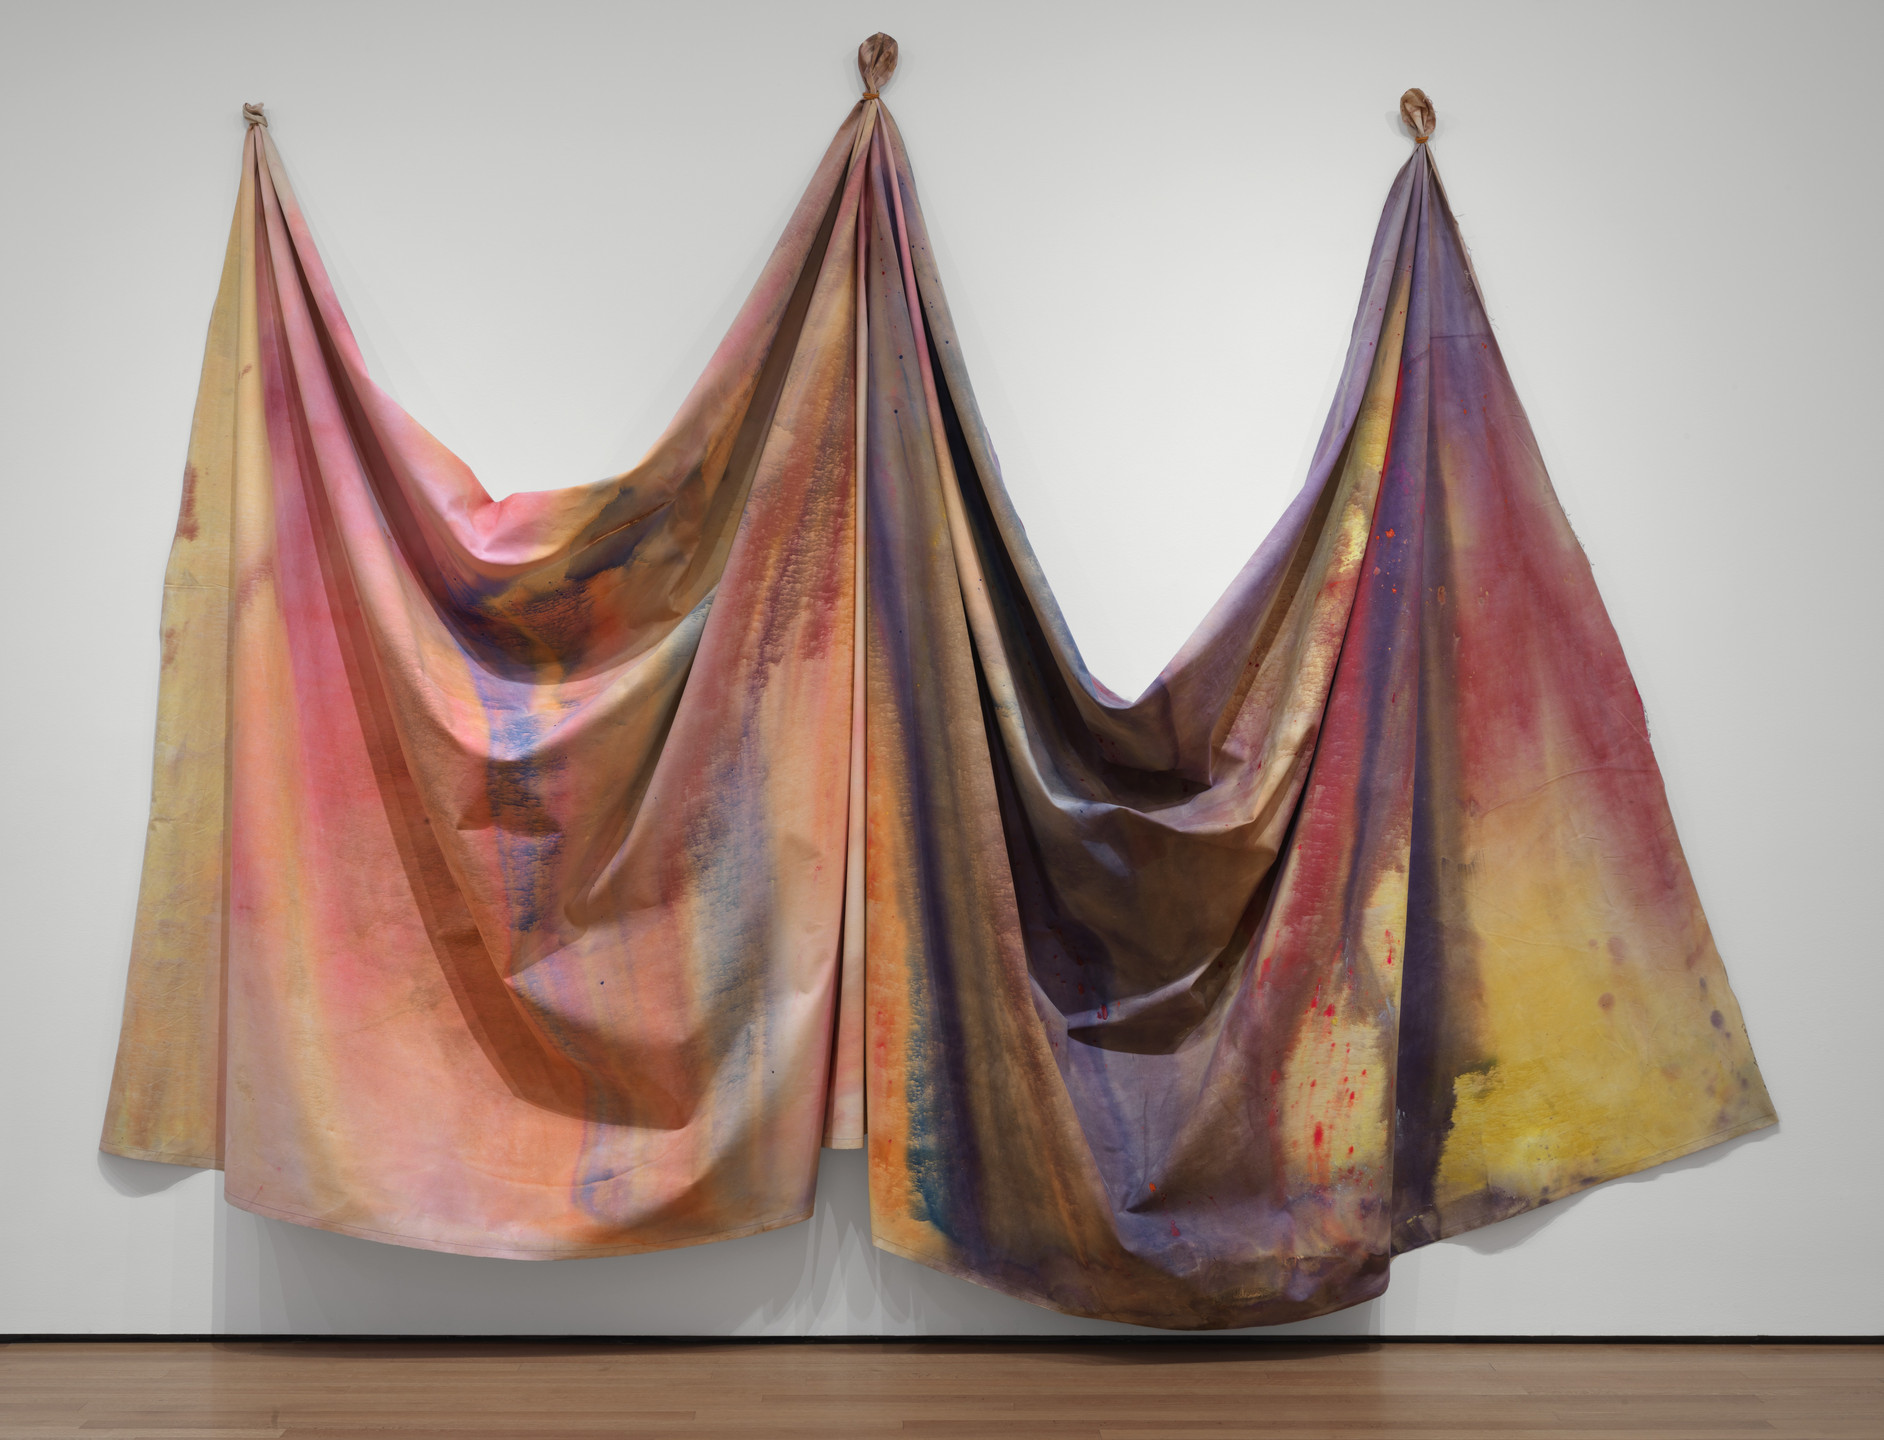 Sam Gilliam. 10/27/69. 1969